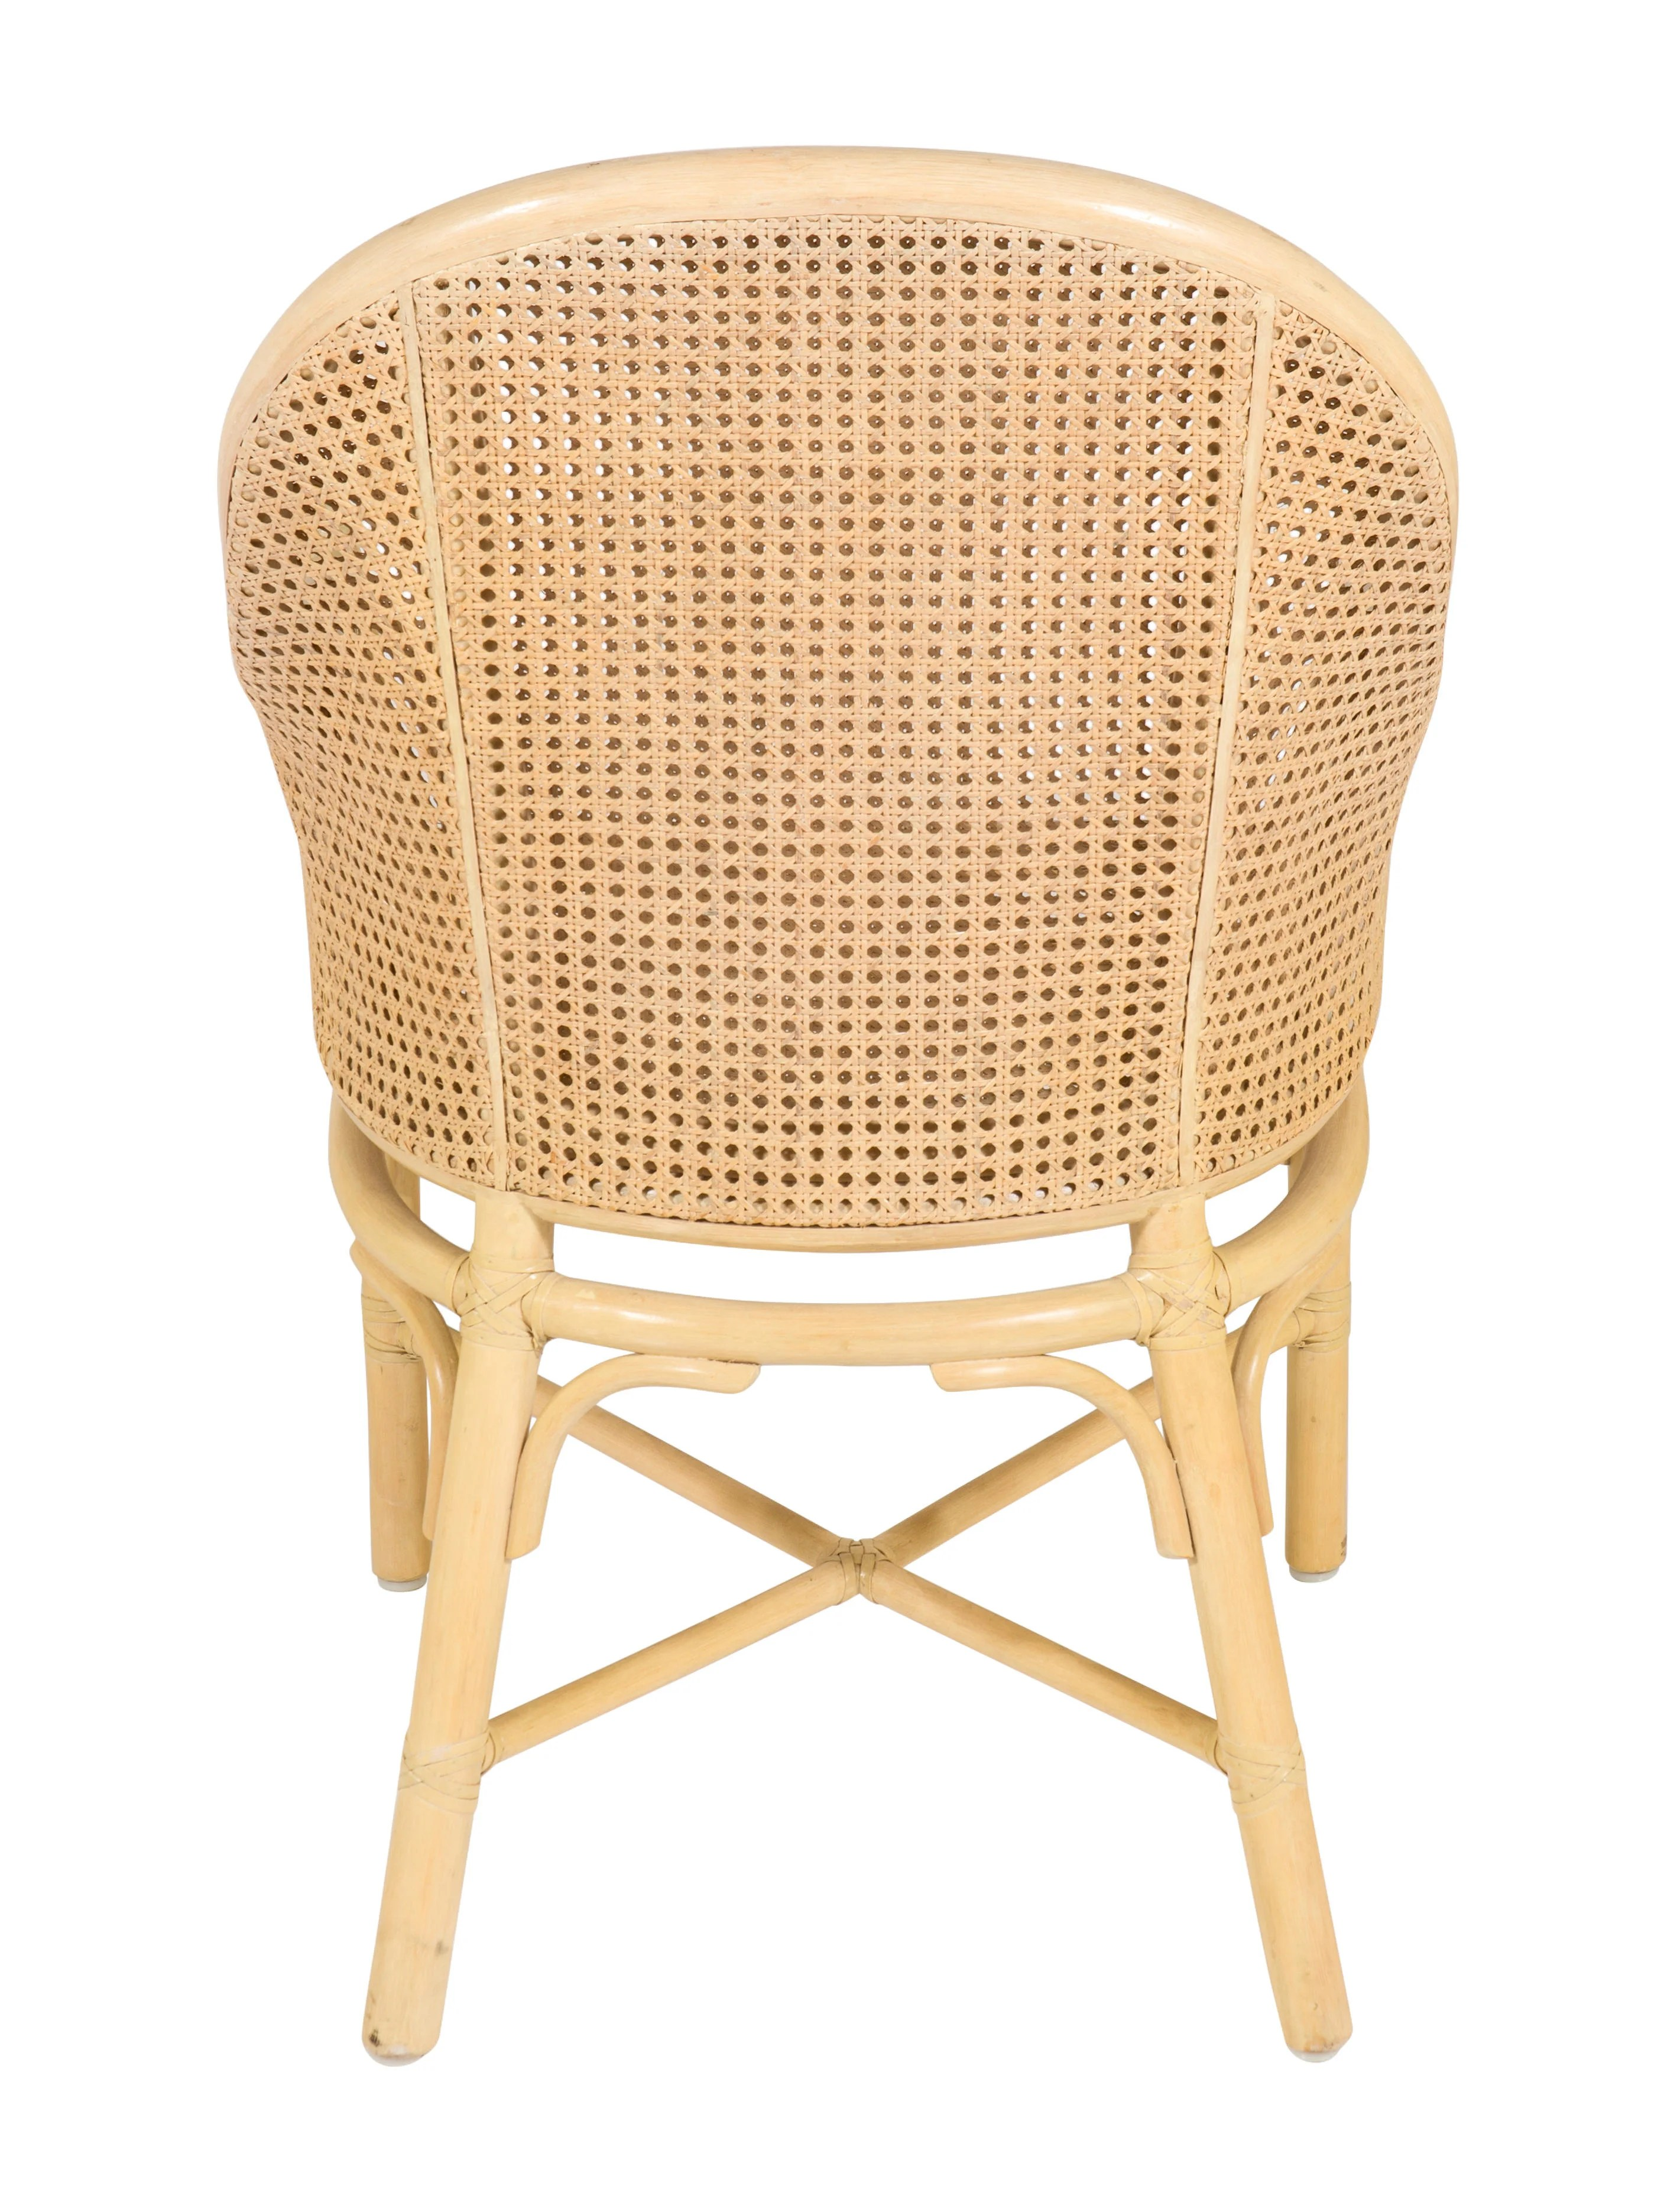 how to cane a chair reclining salon bucket chairs furniture chair20283 the